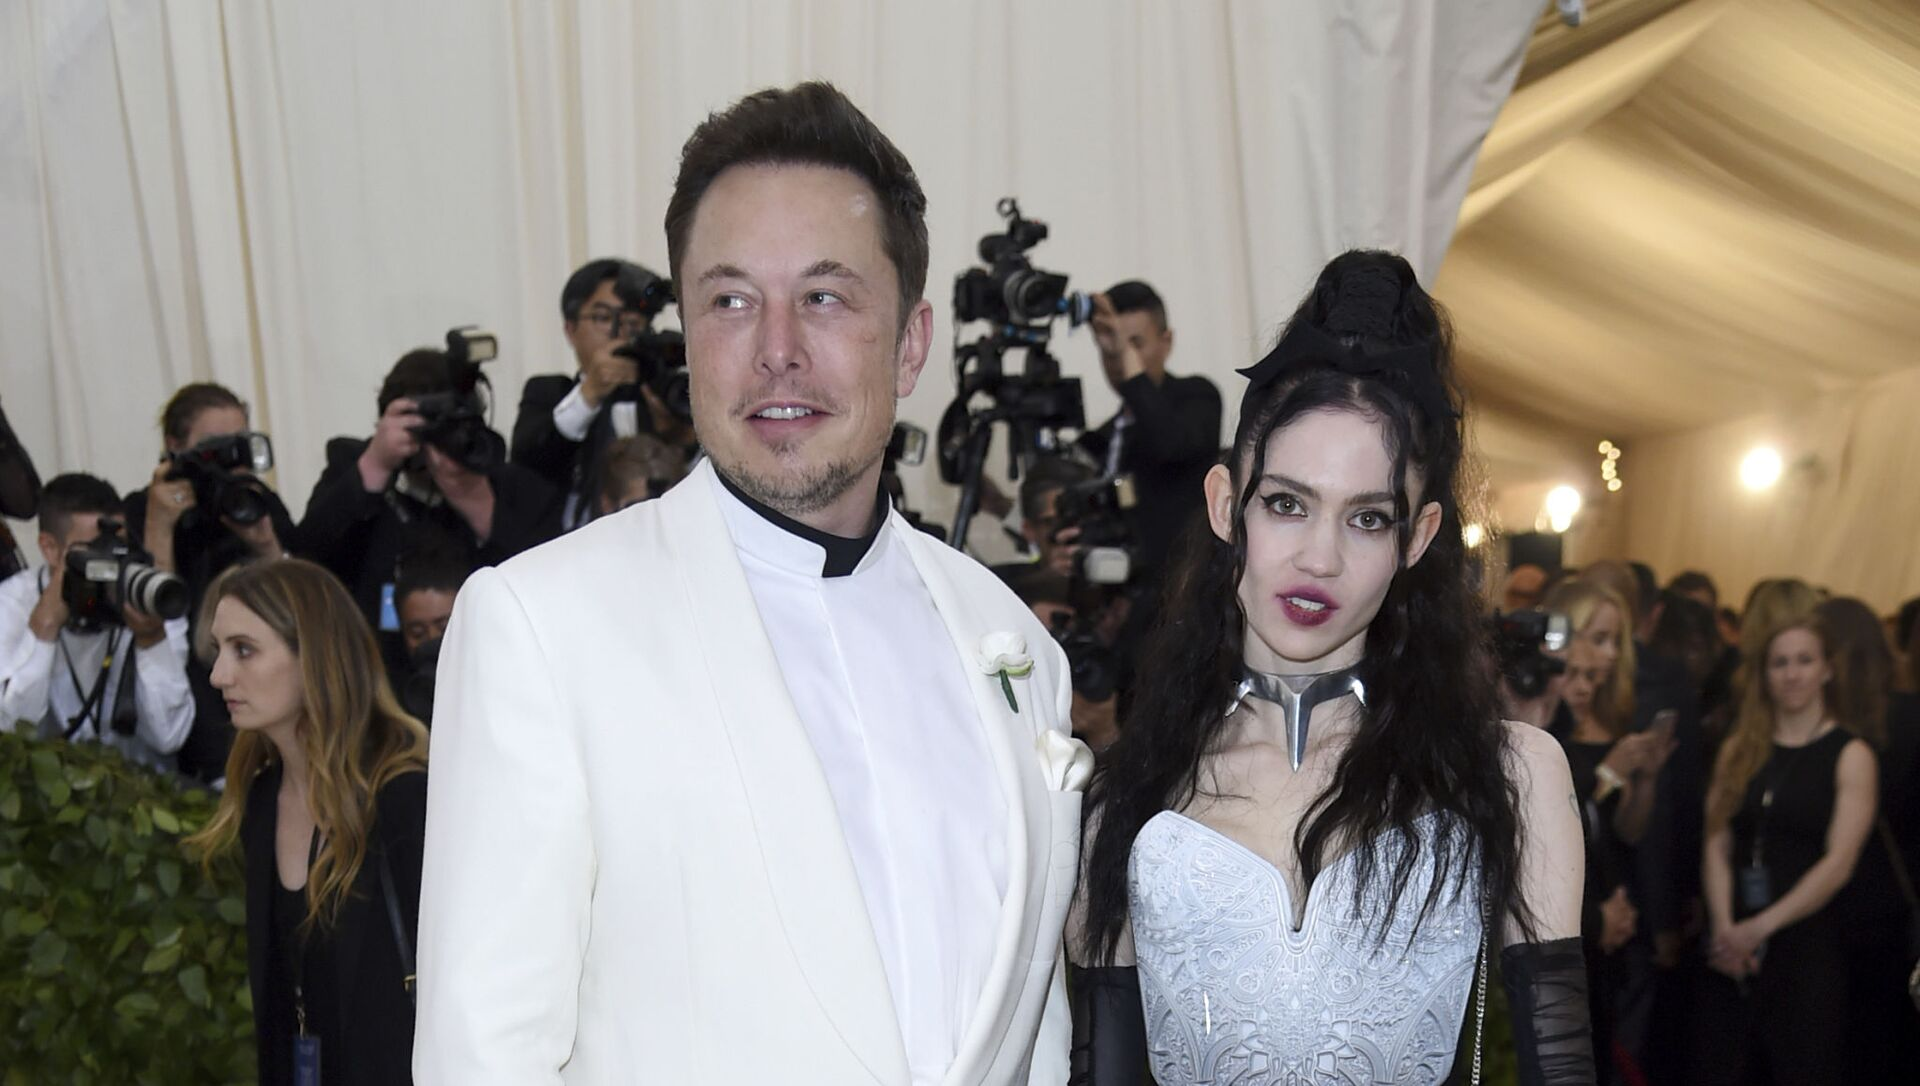 Elon Musk, left and Grimes attends The Metropolitan Museum of Art's Costume Institute benefit gala celebrating the opening of the Heavenly Bodies: Fashion and the Catholic Imagination exhibition on Monday, May 7, 2018, in New York. - Sputnik Italia, 1920, 12.04.2021